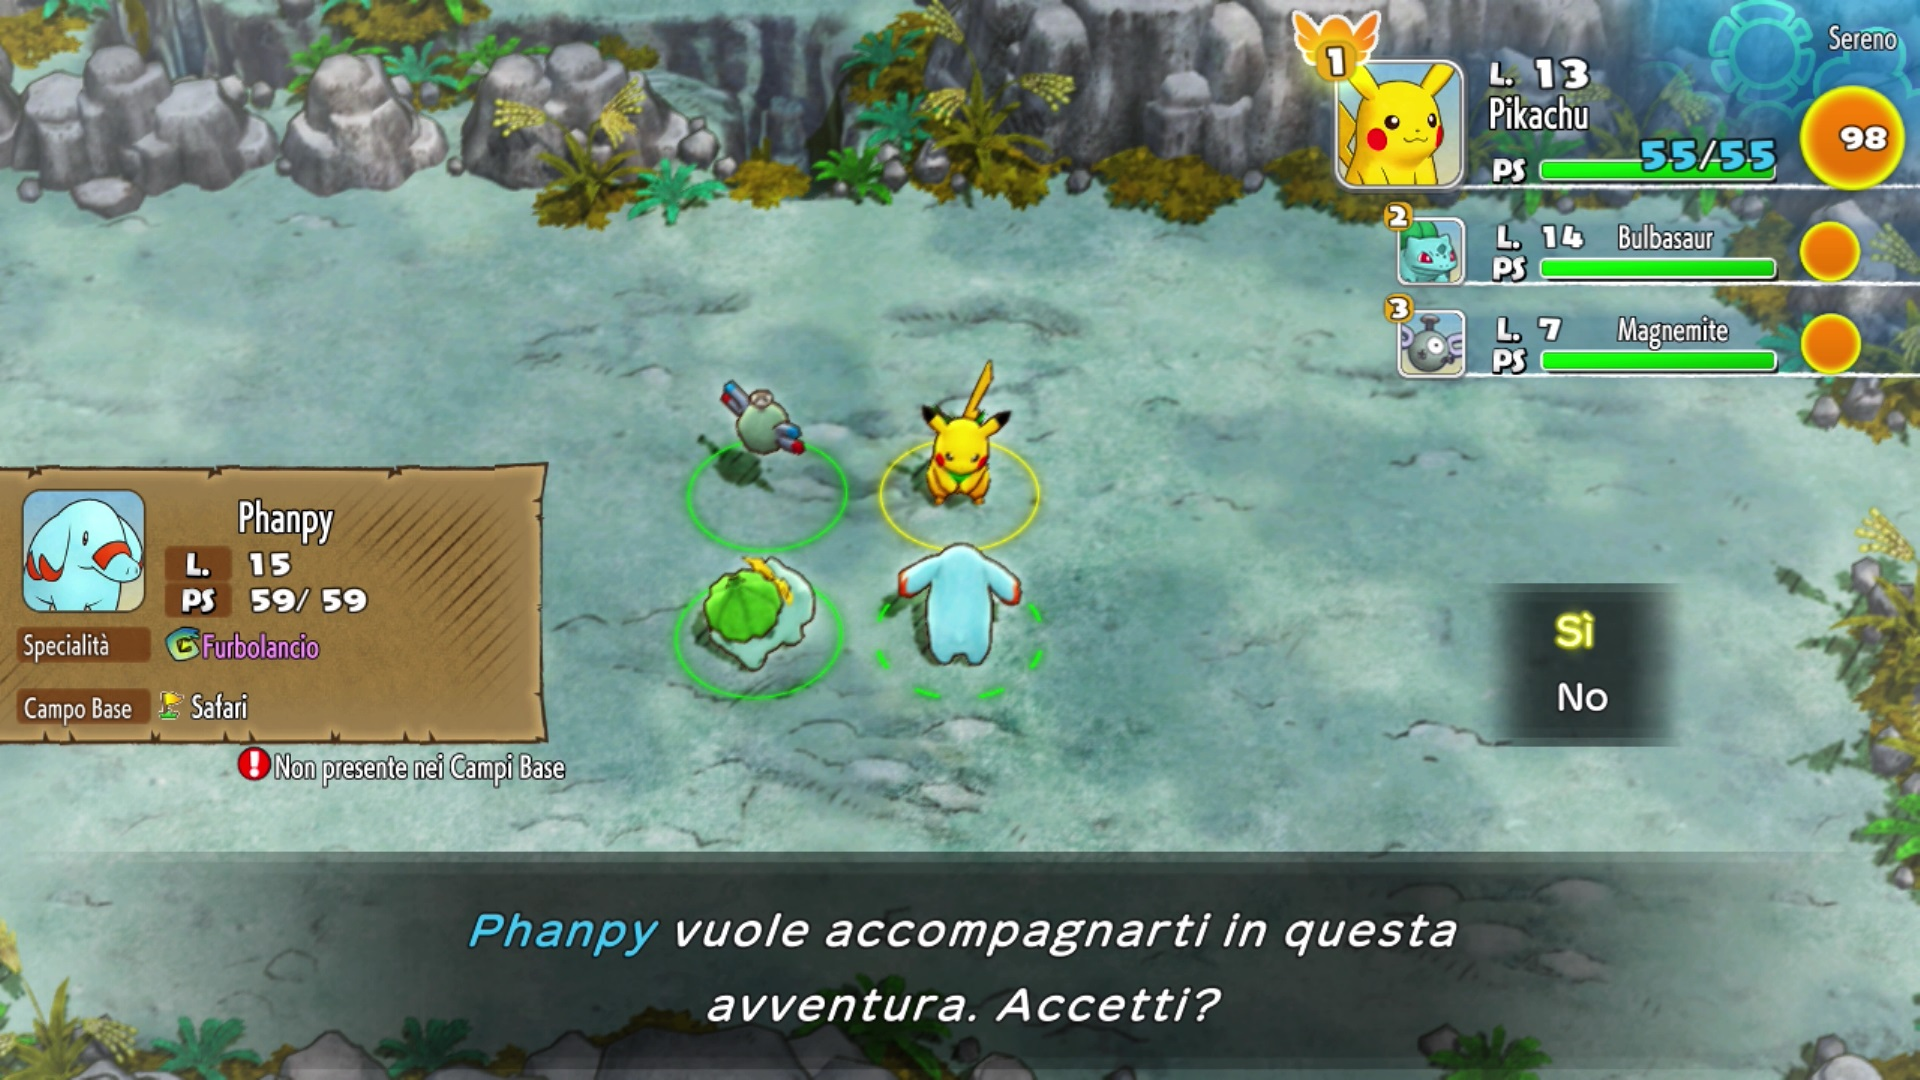 NSwitch_PokemonMysteryDungeon_06_IT.jpg